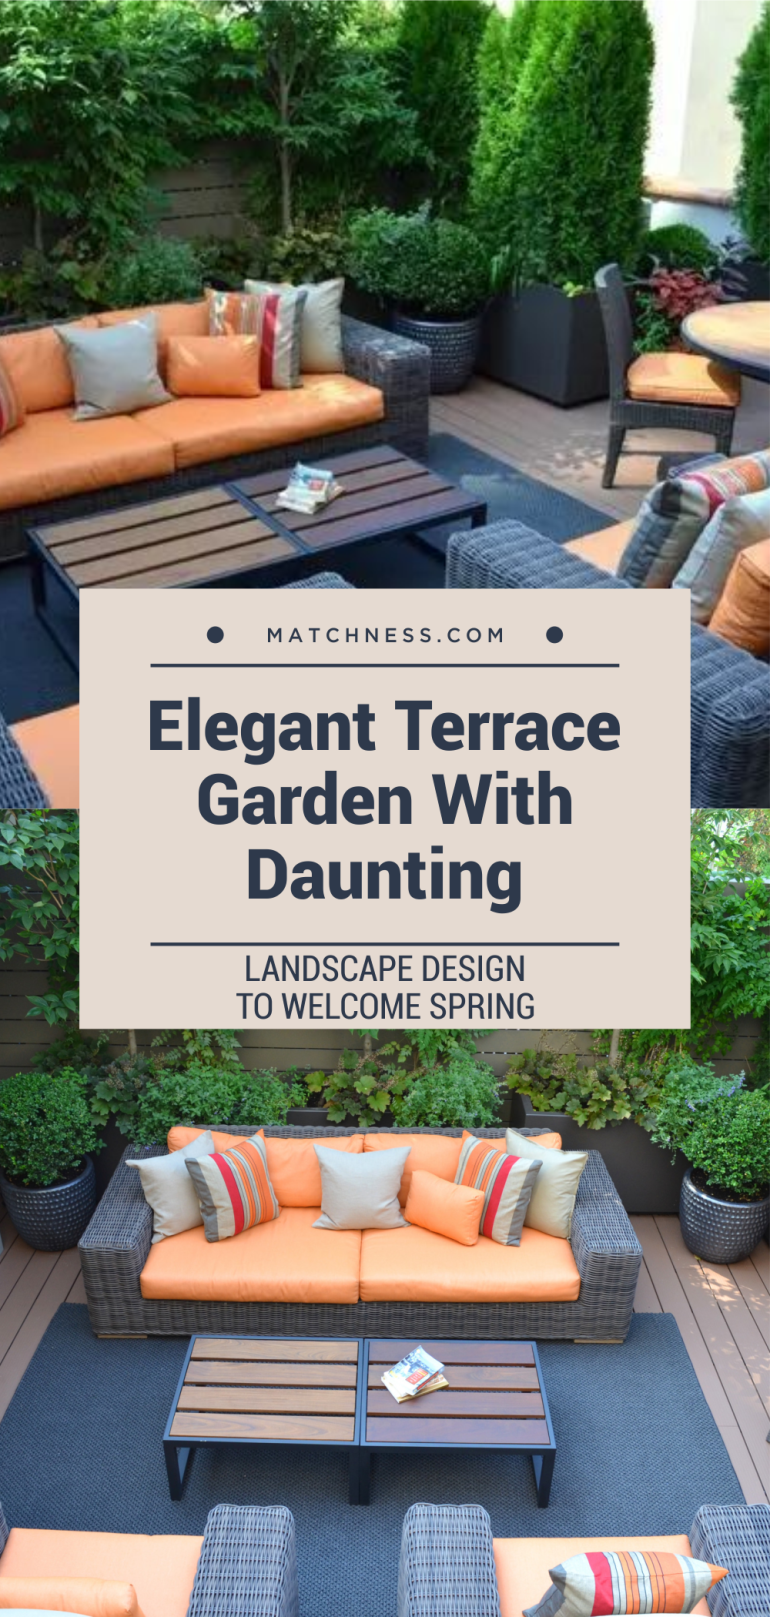 Elegant-terrace-garden-with-daunting-landscape-design-to-welcome-spring-1